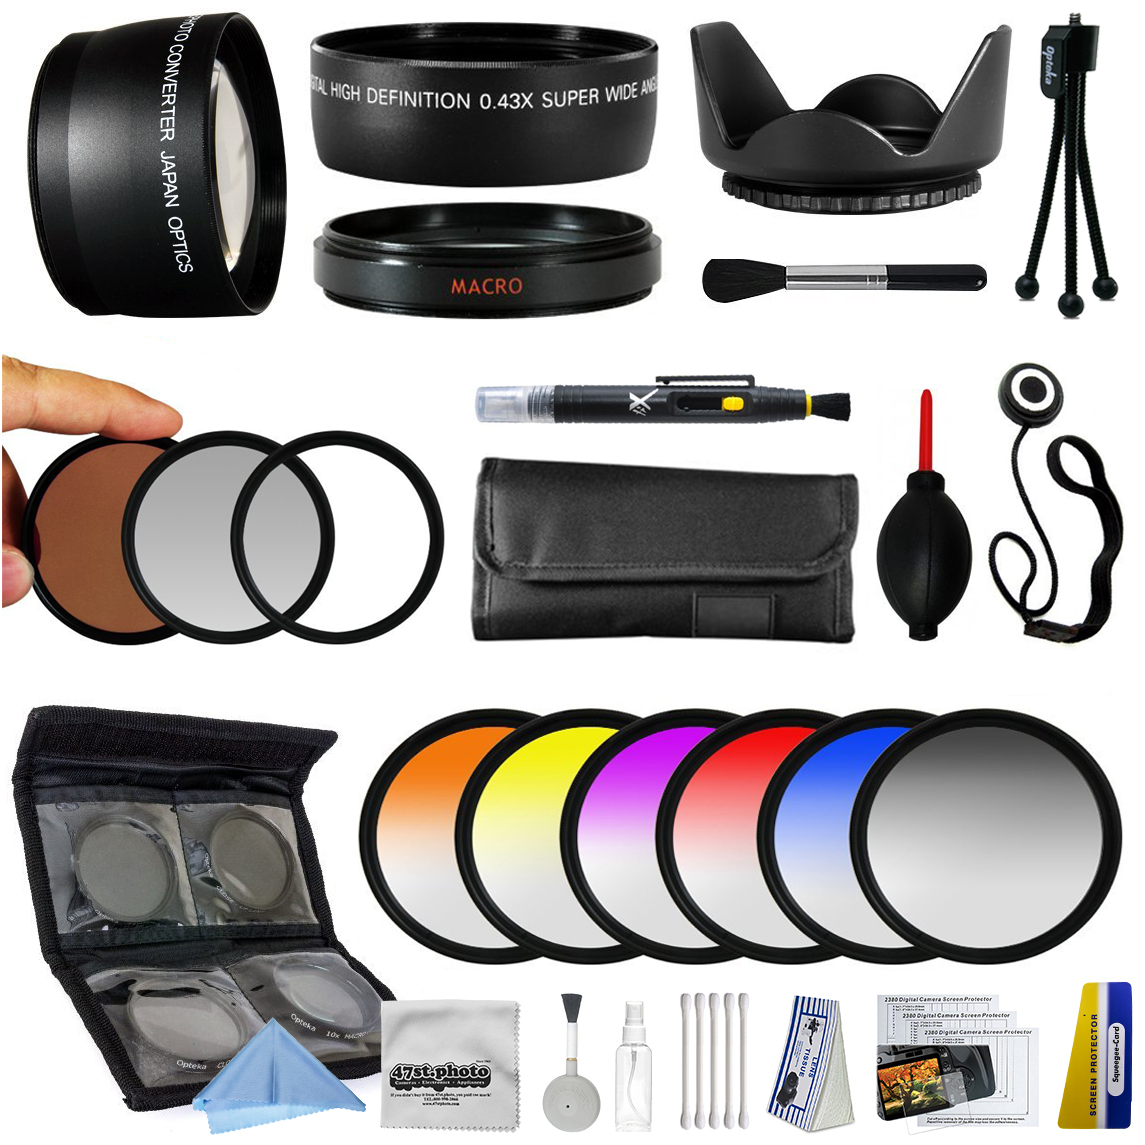 25 Piece Advanced Lens Package For The Canon EOS Rebel T5I T4I SL1 T5 1100D 1000D T3 T3i 60D 600D 650D 7D 350D 50D 6D 5D 1D Includes 0.43X + 58MM 2.2x Lens +Filter Kit